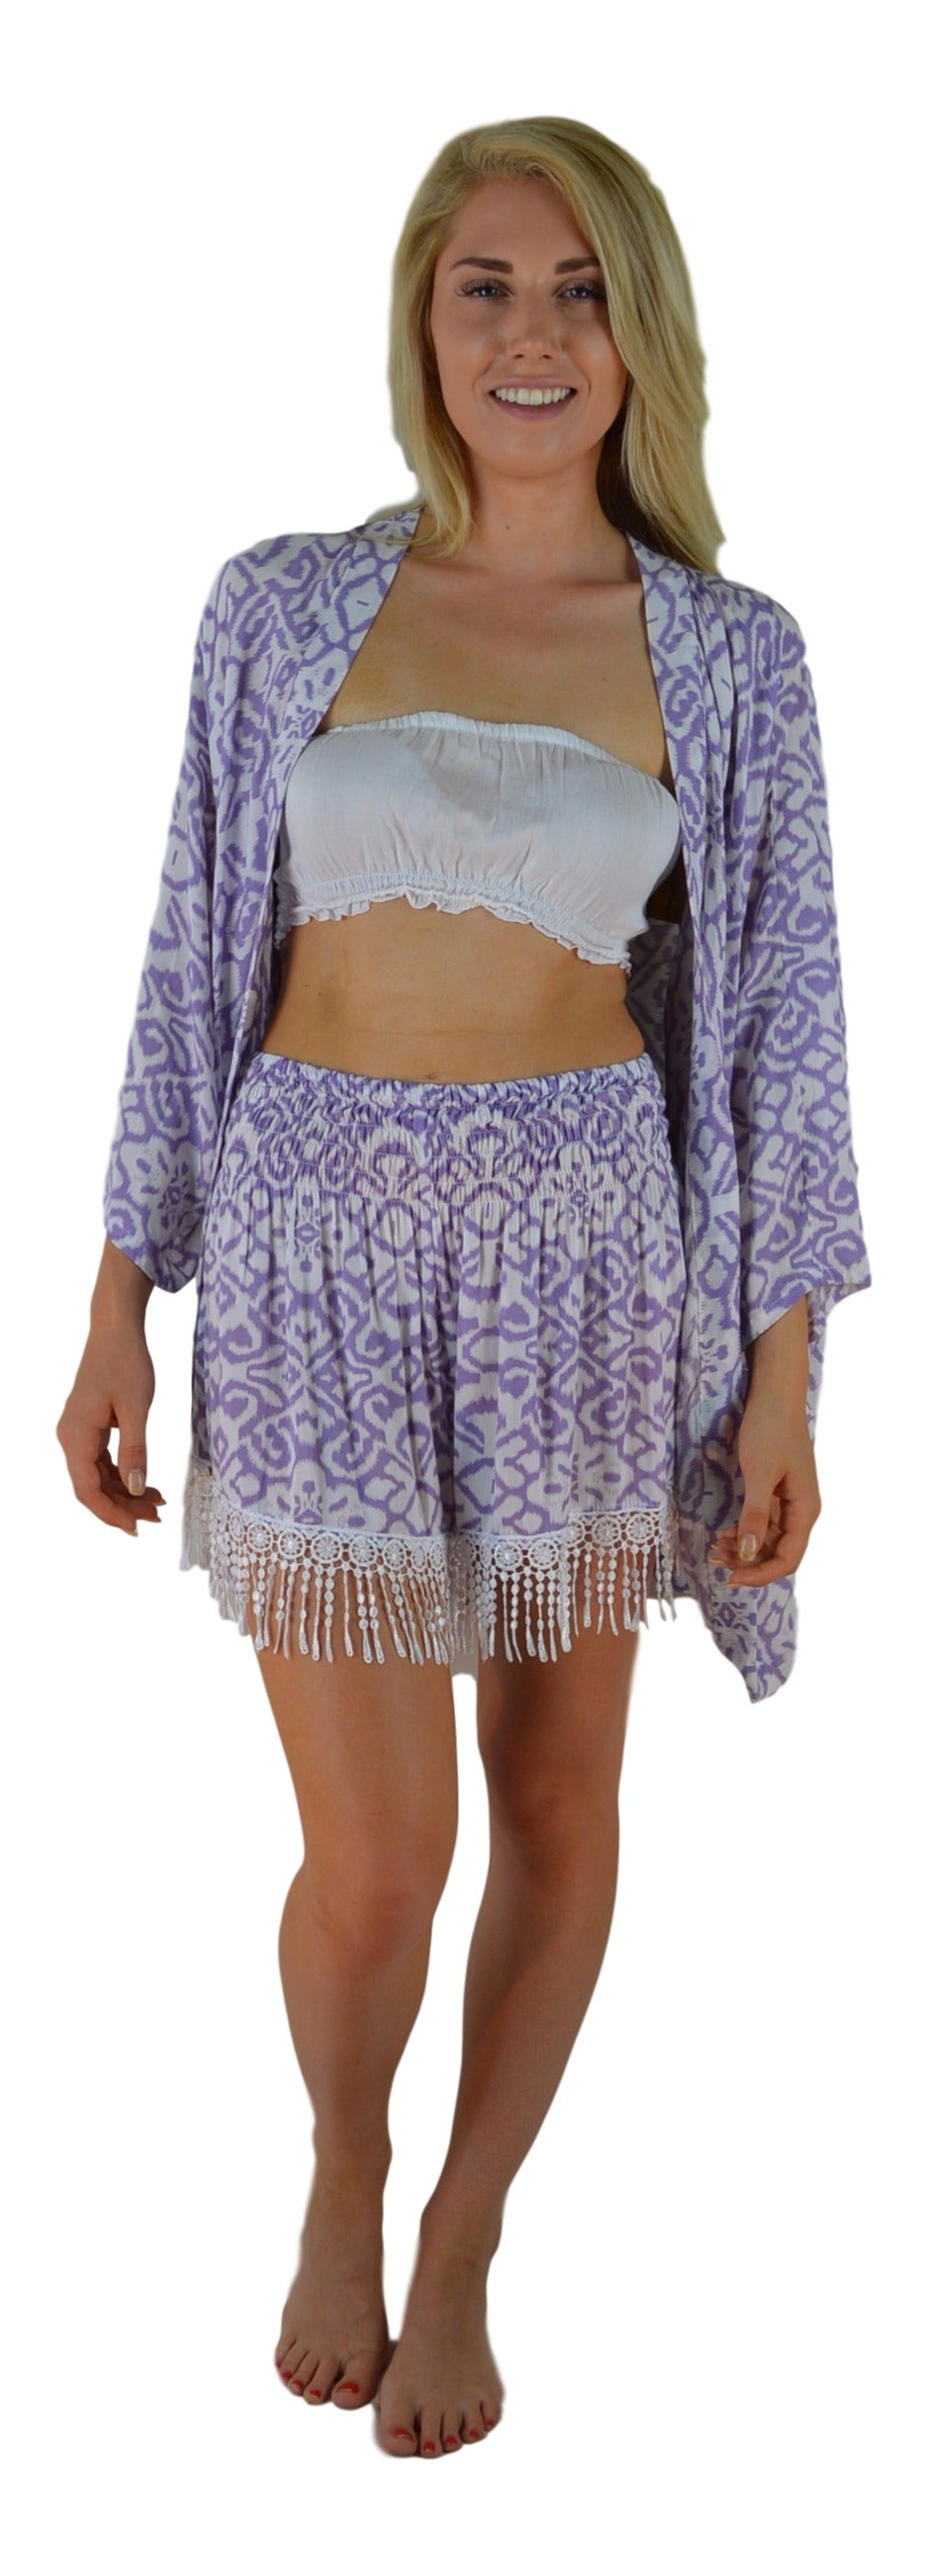 Secret Beach - Kula Jacket - Large Ikat - Lilac